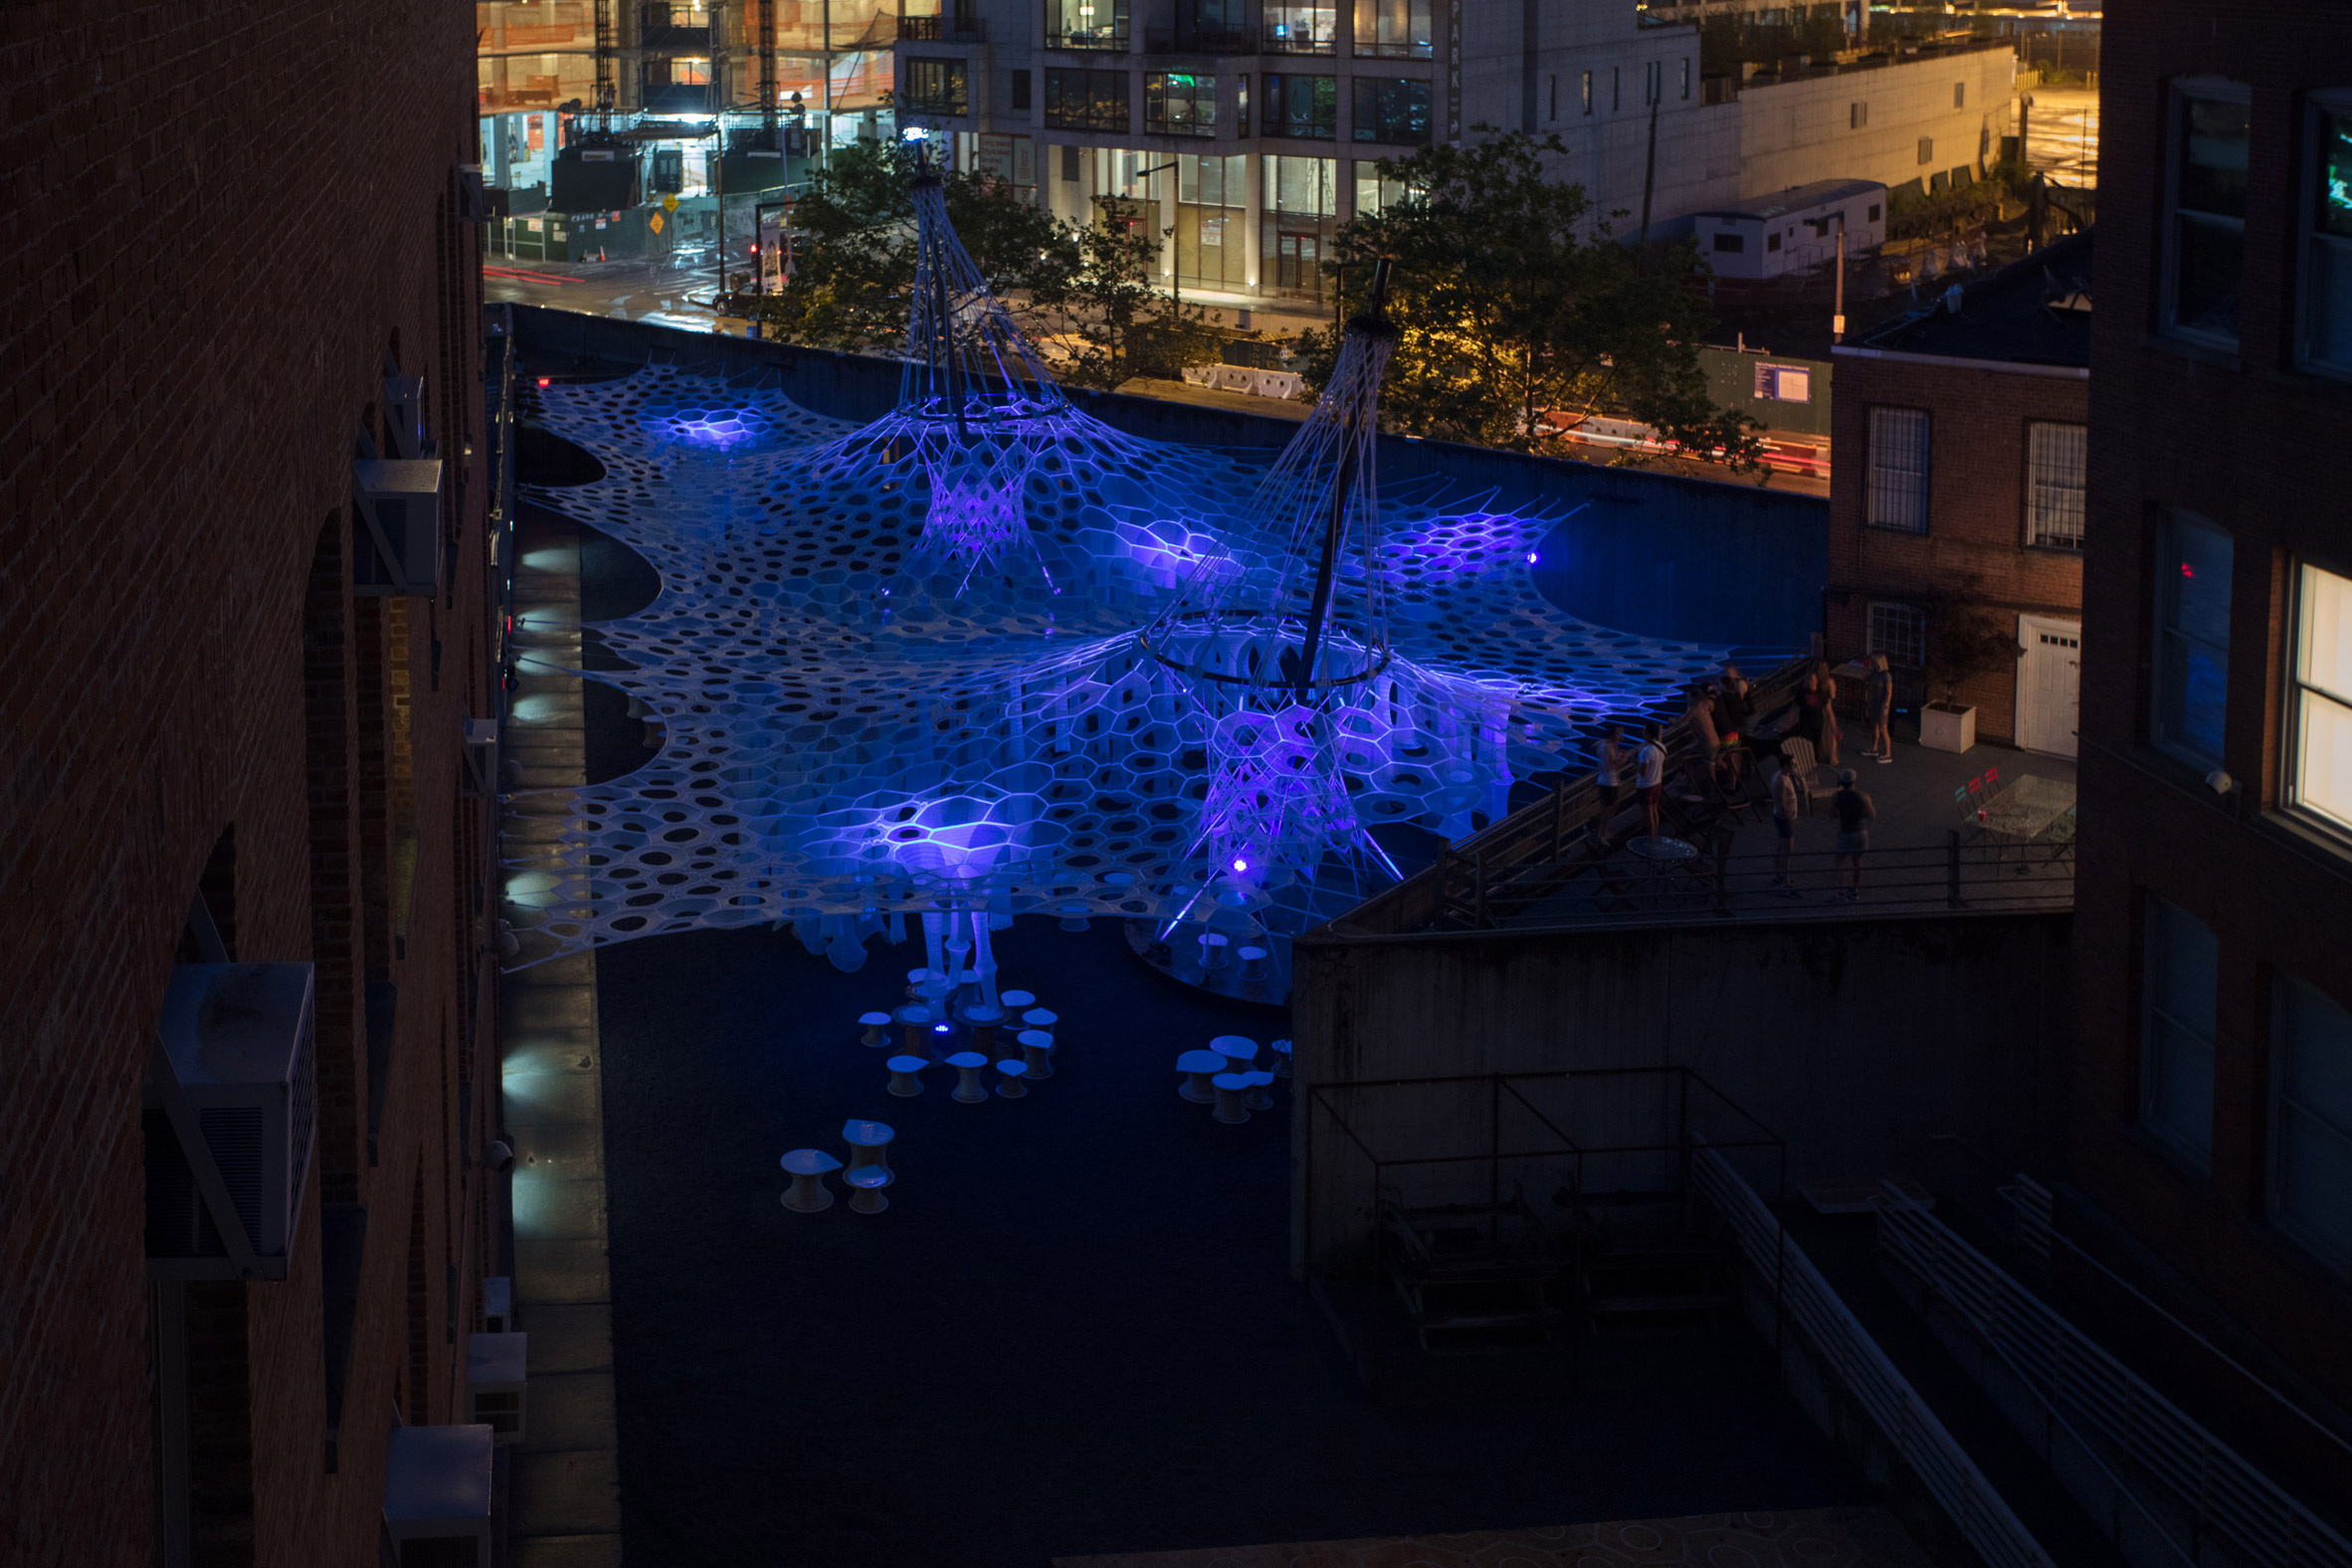 Jenny Sabin stretches robotically woven canopy across MoMA PS1 courtyard